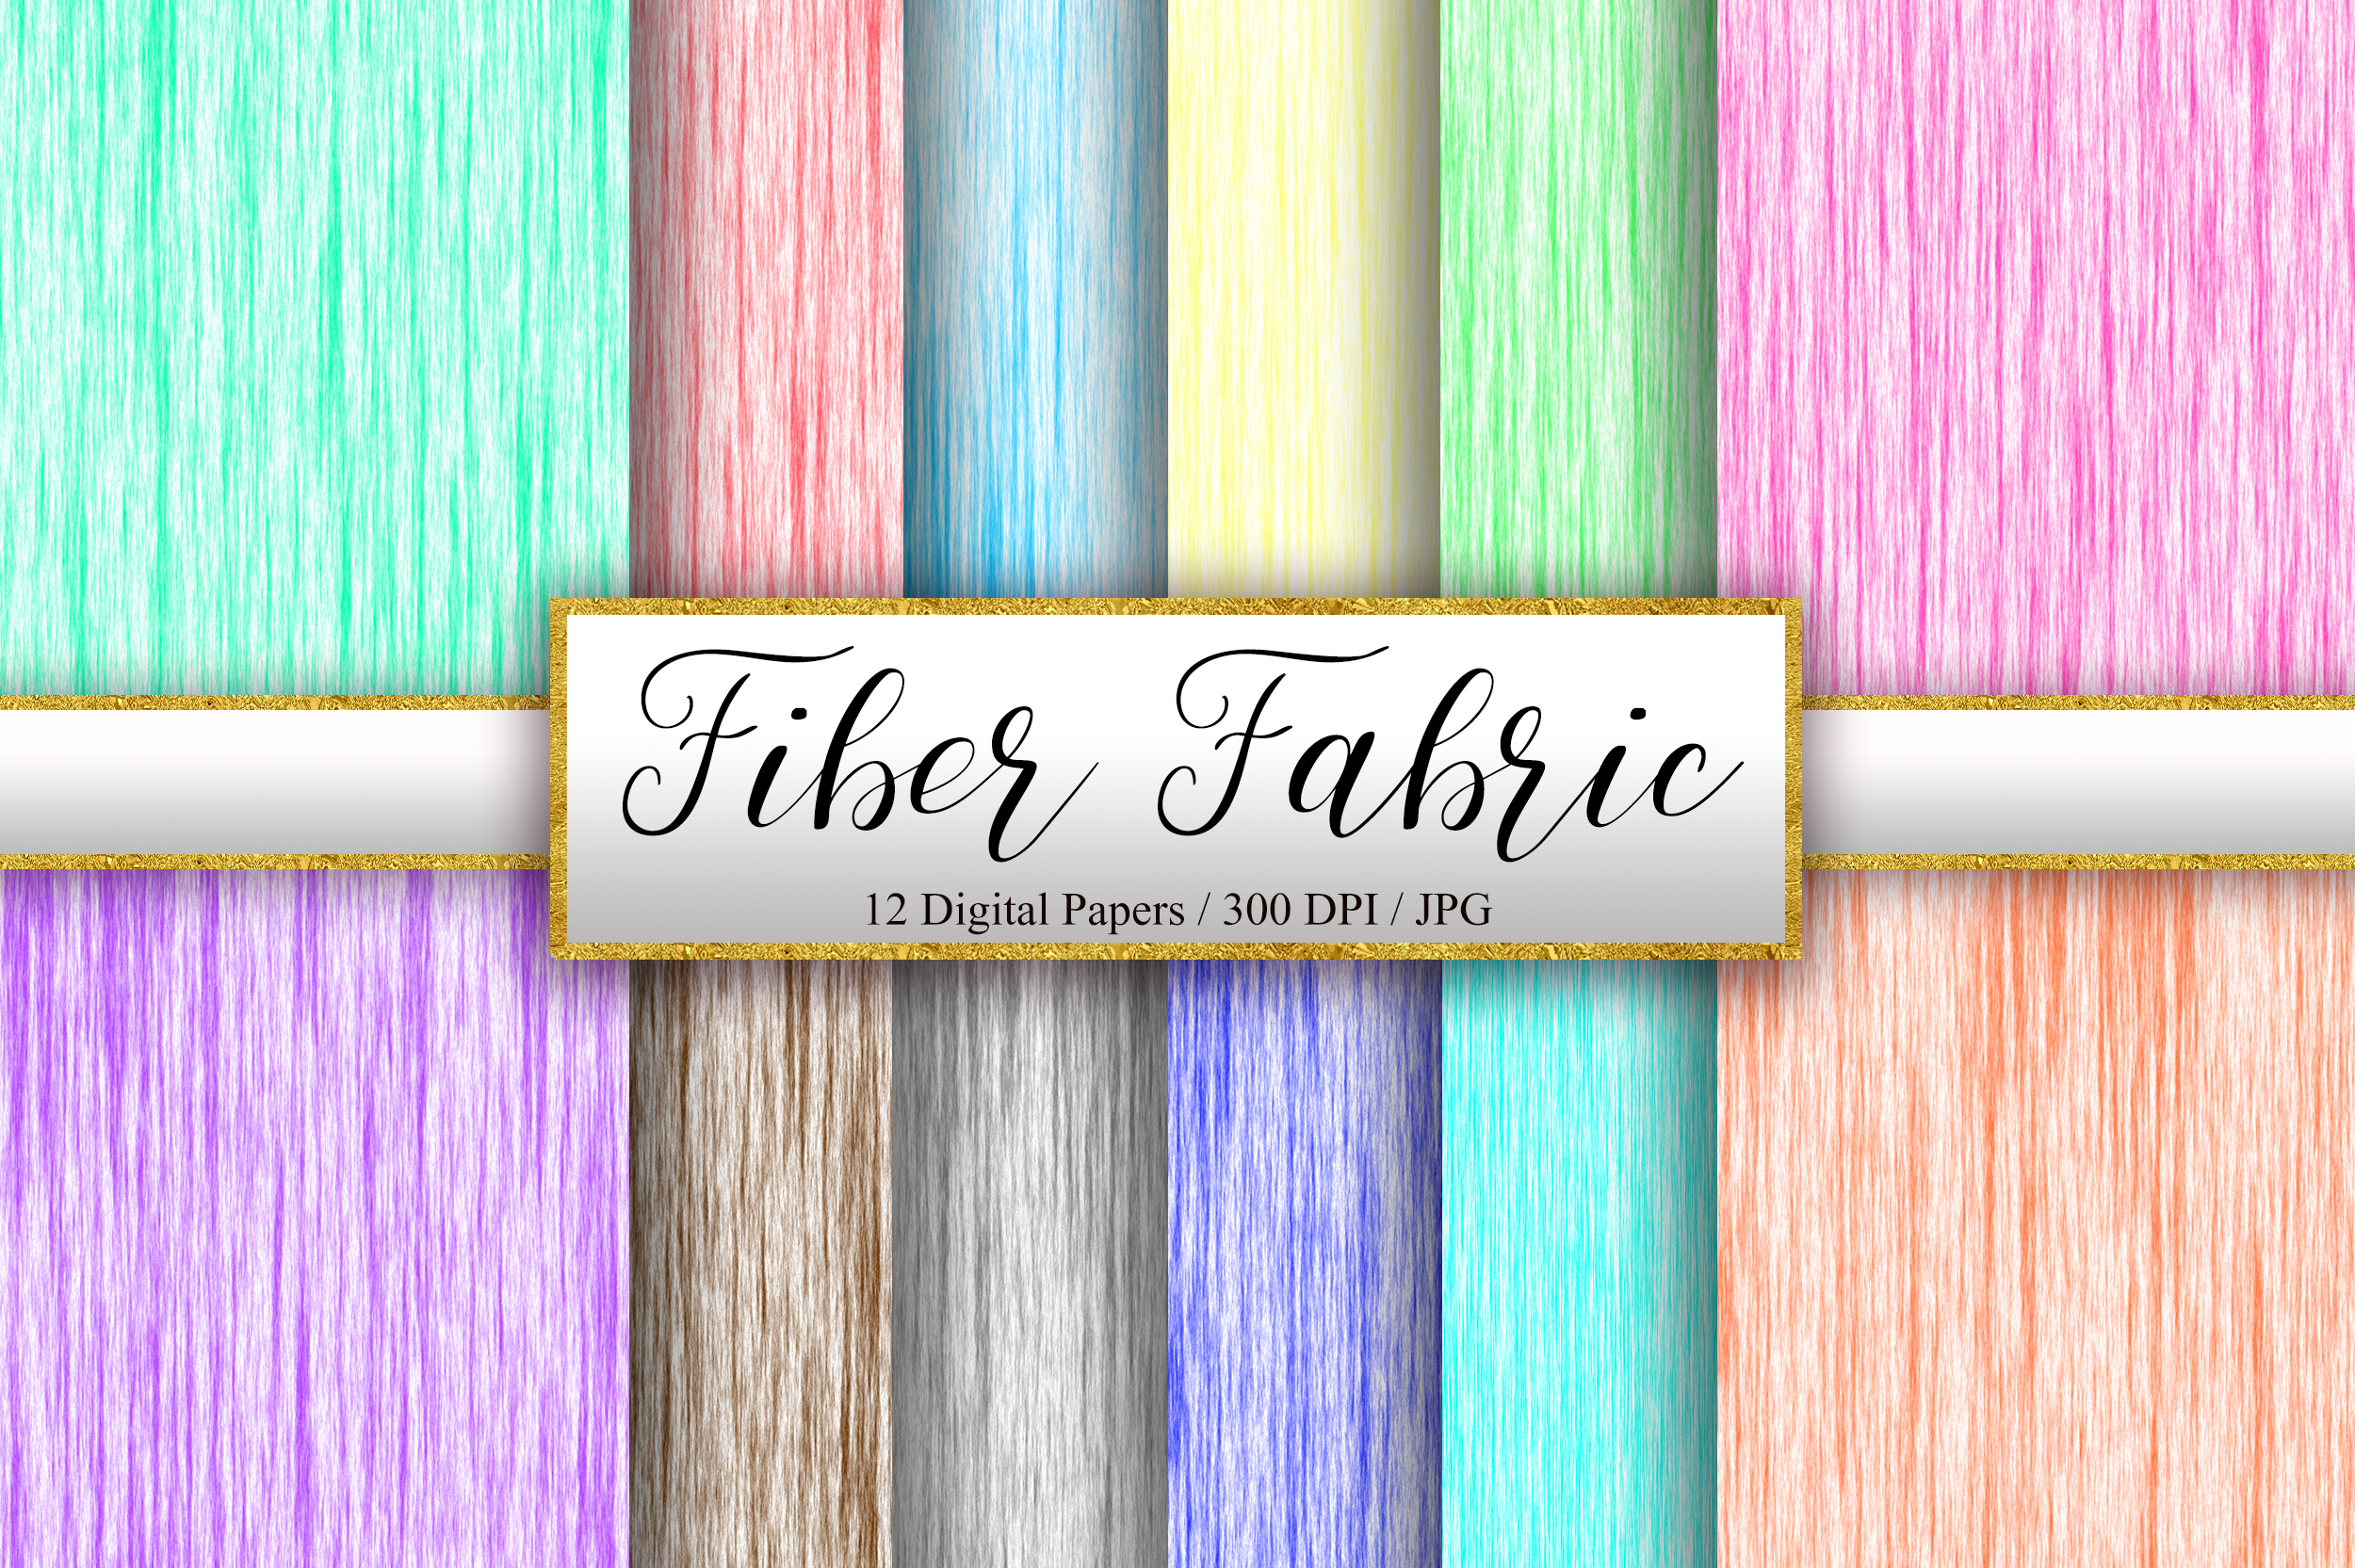 Fiber Fabric Texture Background Graphic By Pinkpearly Creative